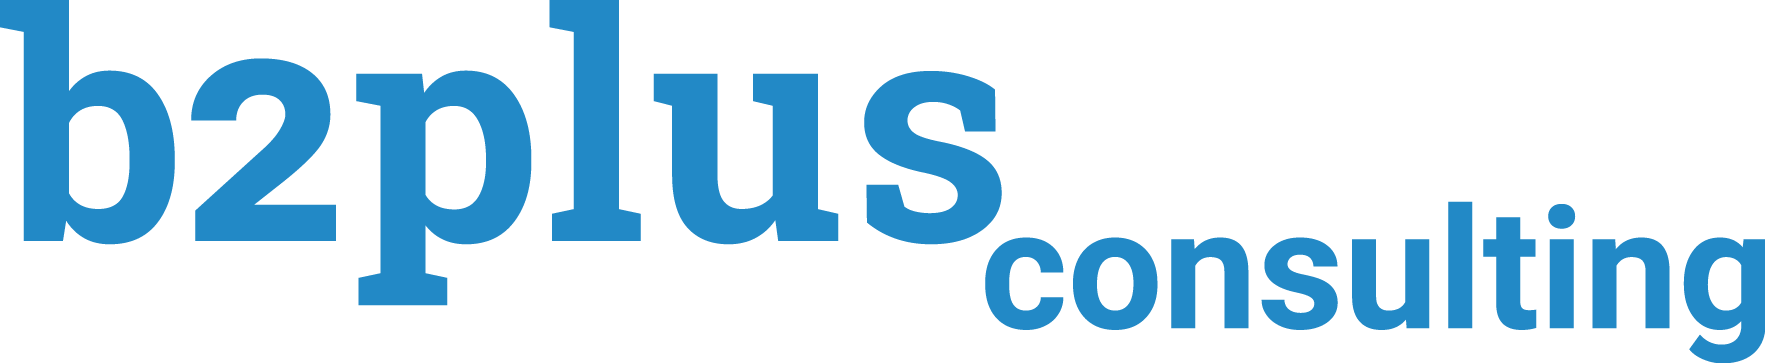 b2plus Consulting - Salesforce Professionals in Munich and Düsseldorf, Germany